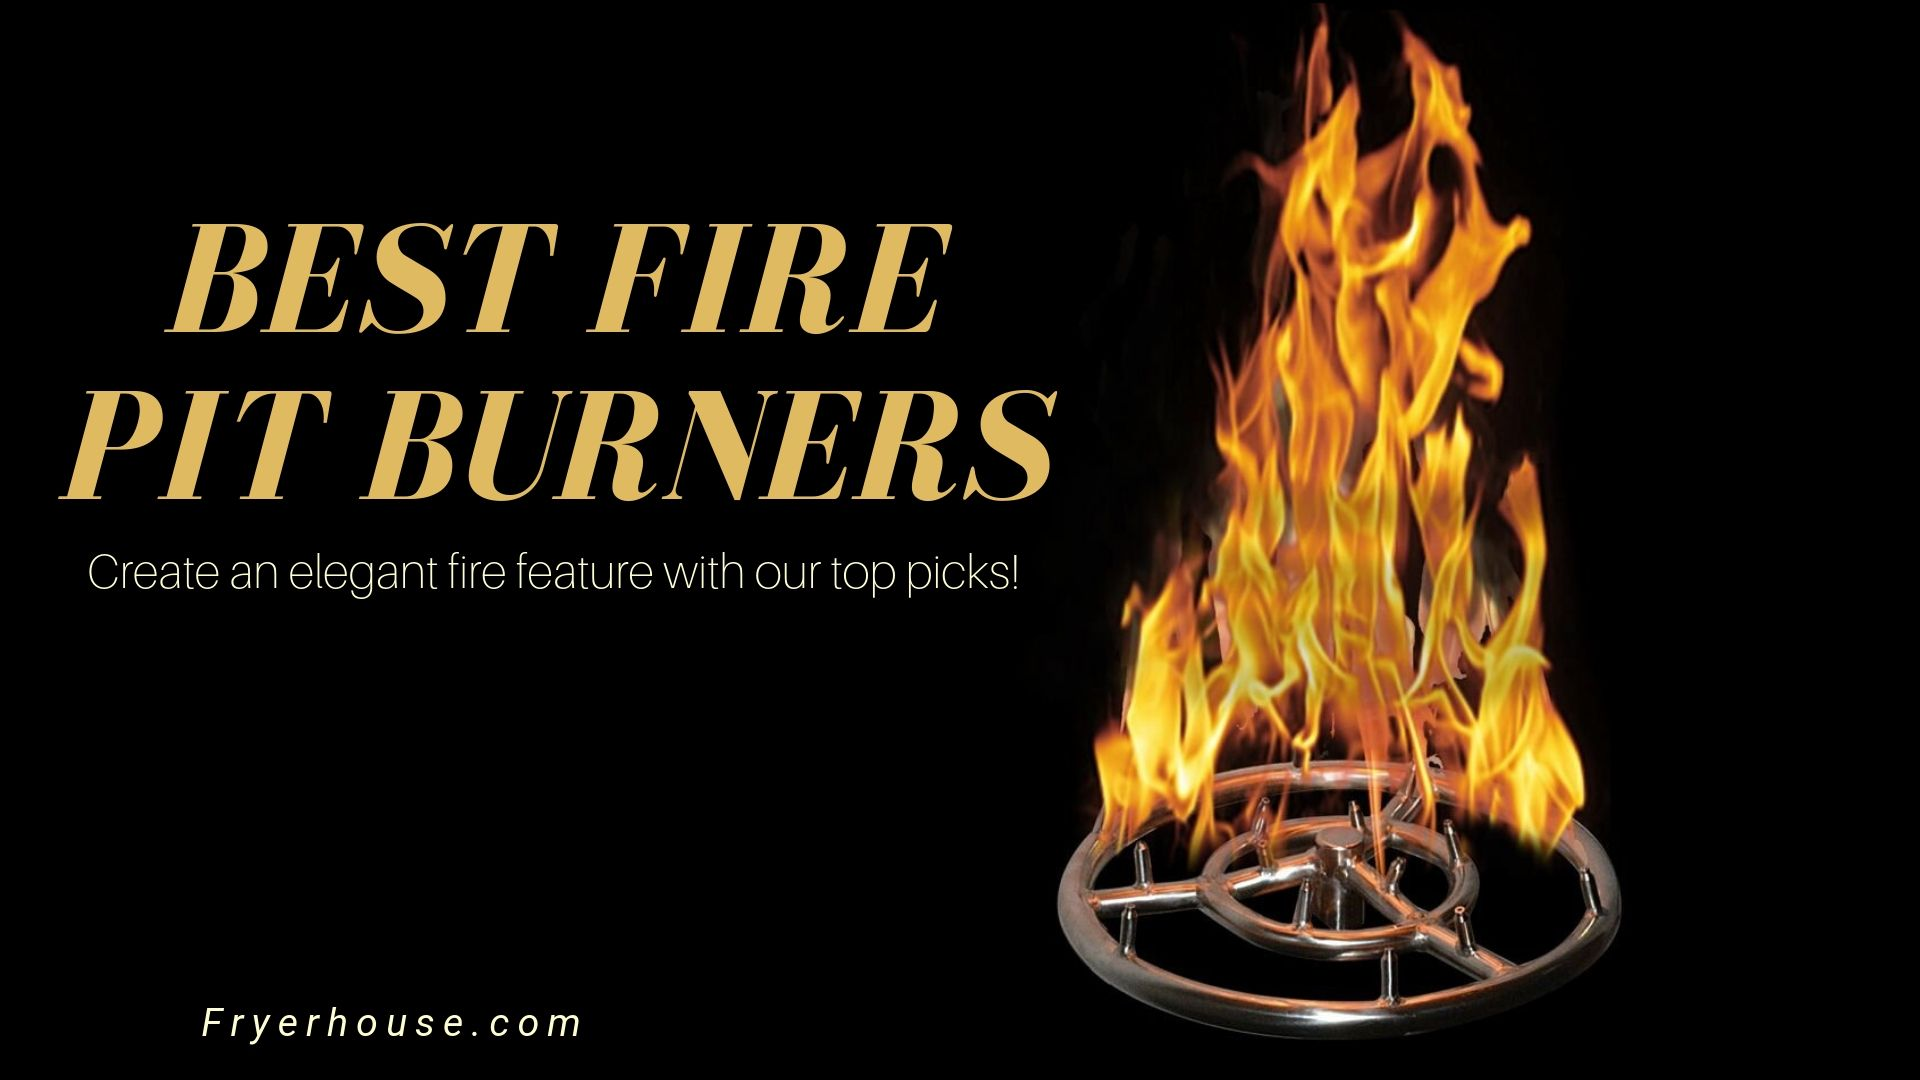 The Best Fire Pit Burners